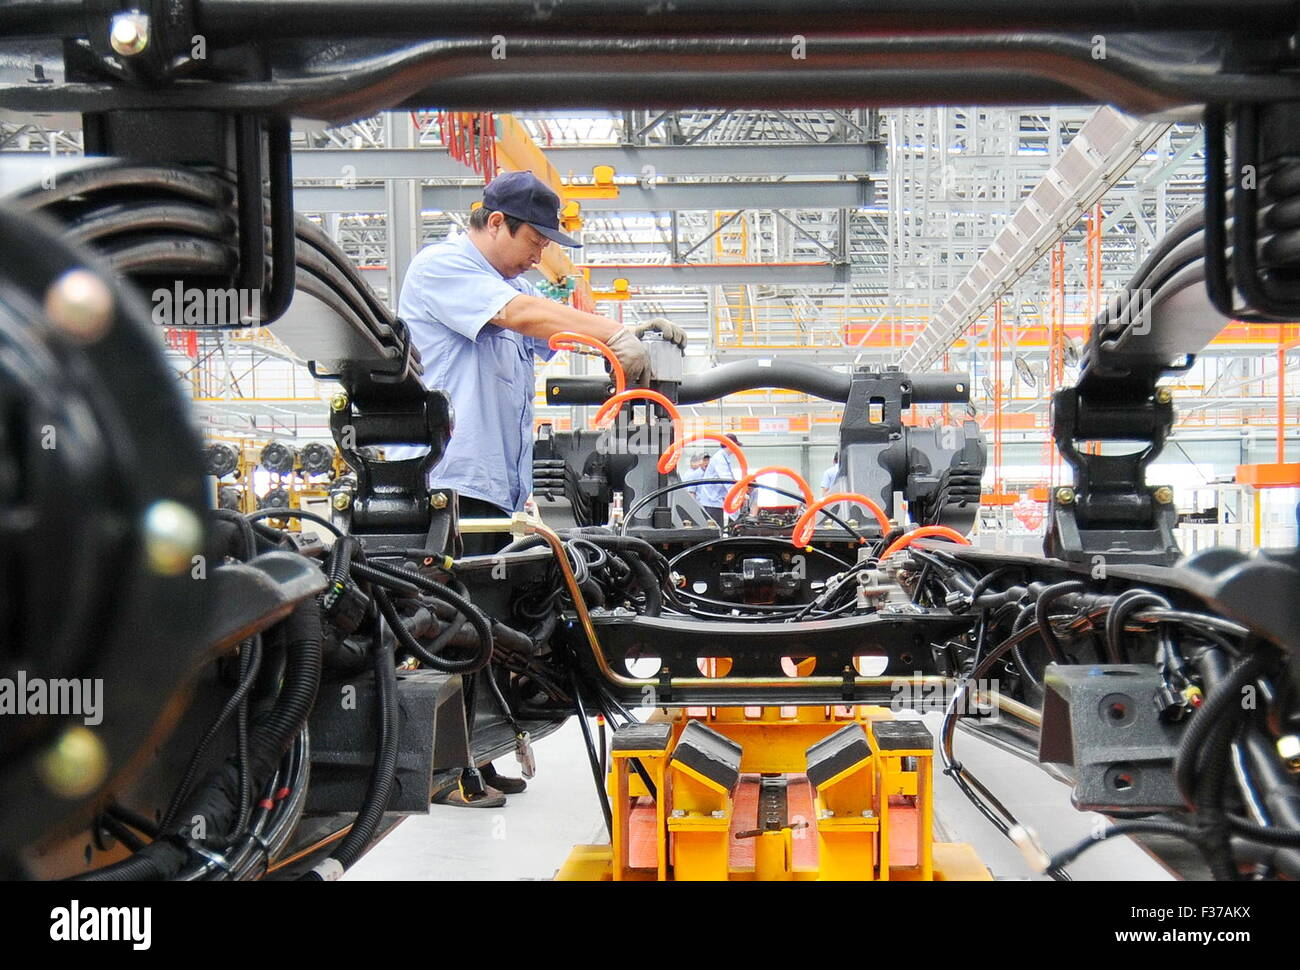 (151001) -- XINGTAI, Oct. 1, 2015 (Xinhua) -- Workers install a heavy truck at a production base of Aviation Industry - Stock Image